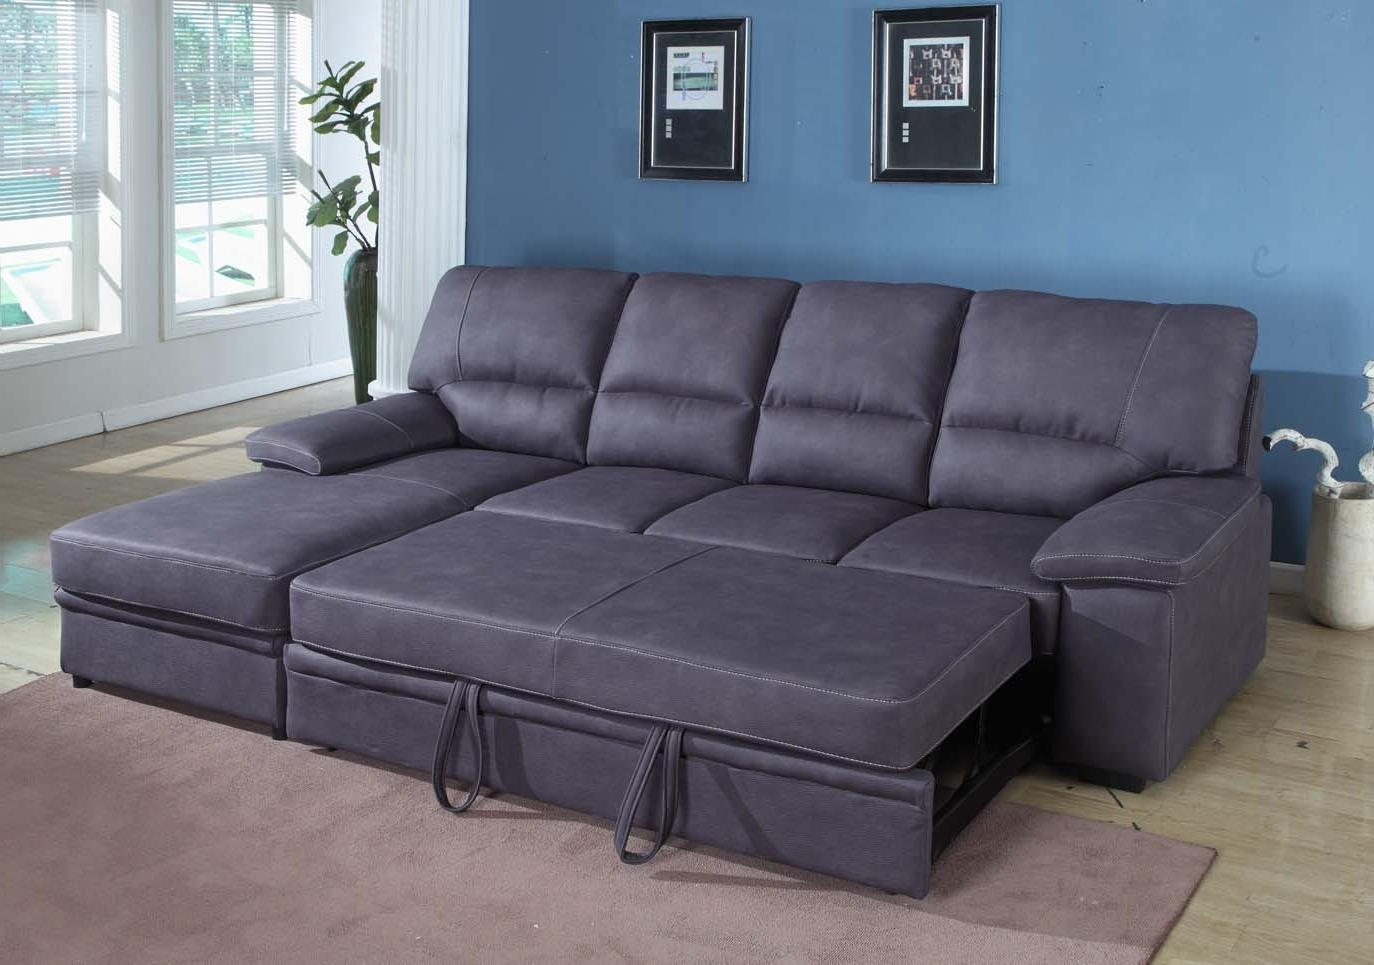 Grey Sleeper Sectional Sofa (View 6 of 15)